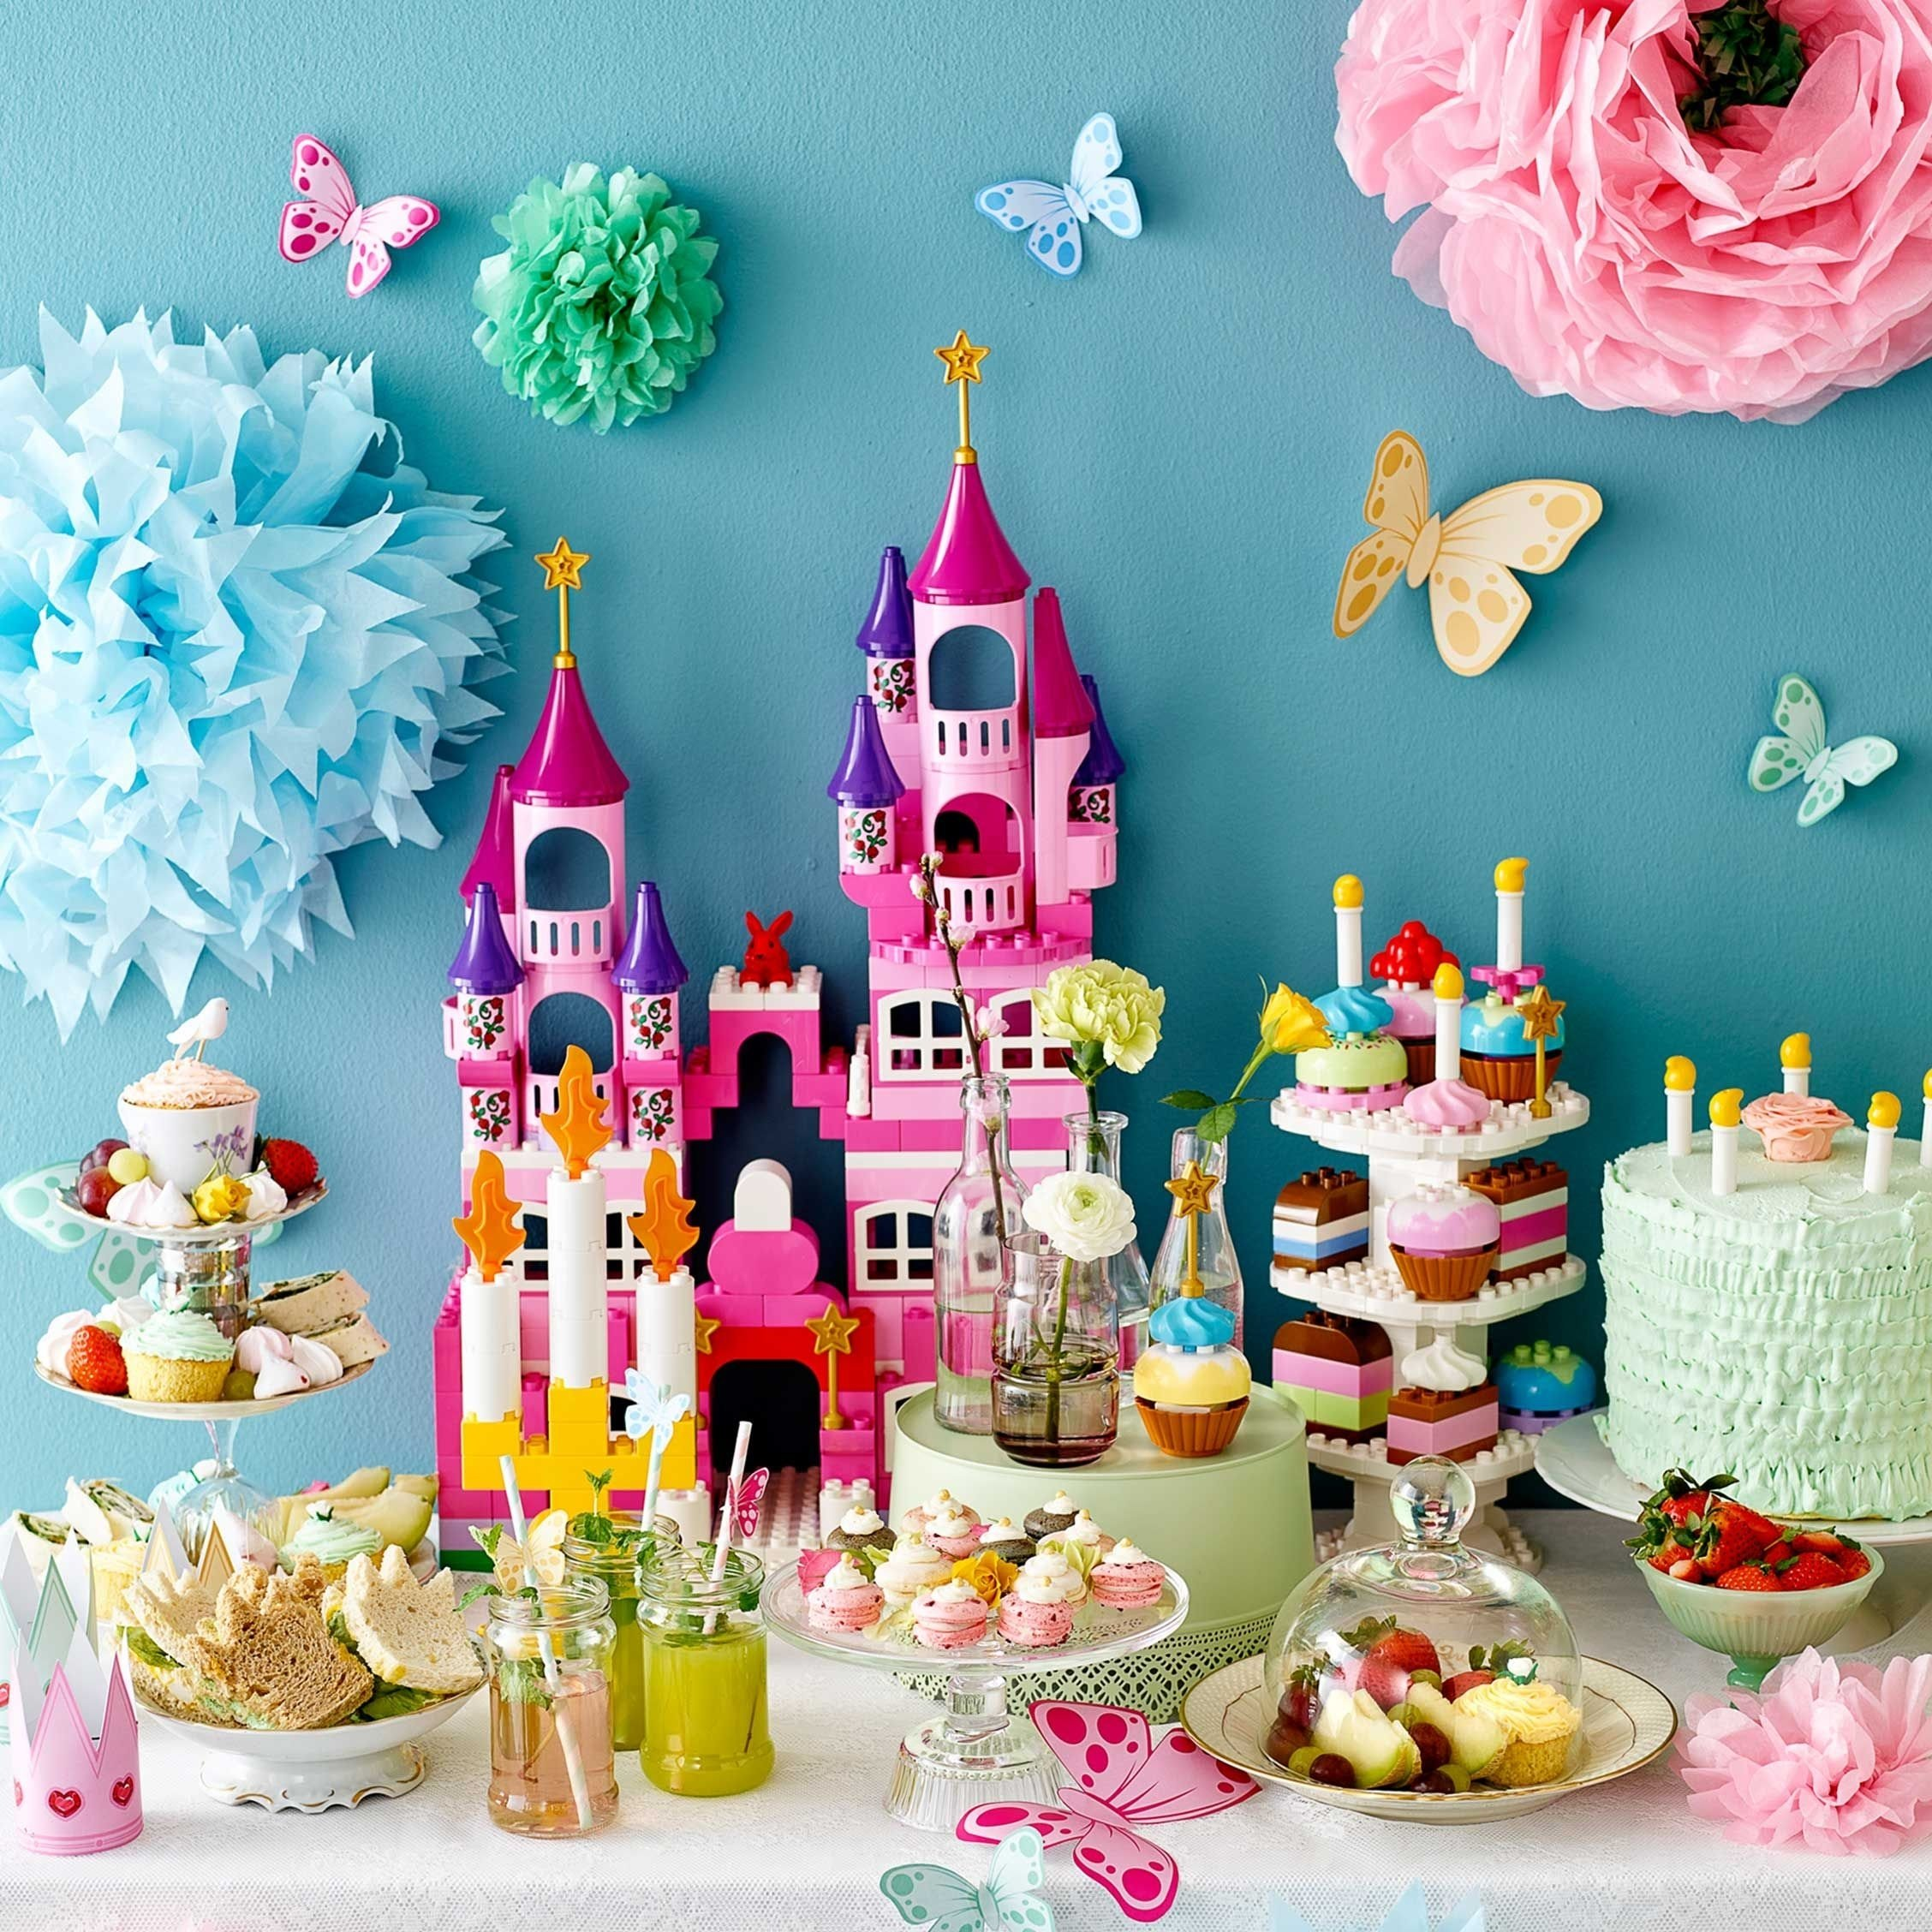 10 Stylish Princess Tea Party Birthday Ideas princess tea party lego duplo party party things for the kids 2020